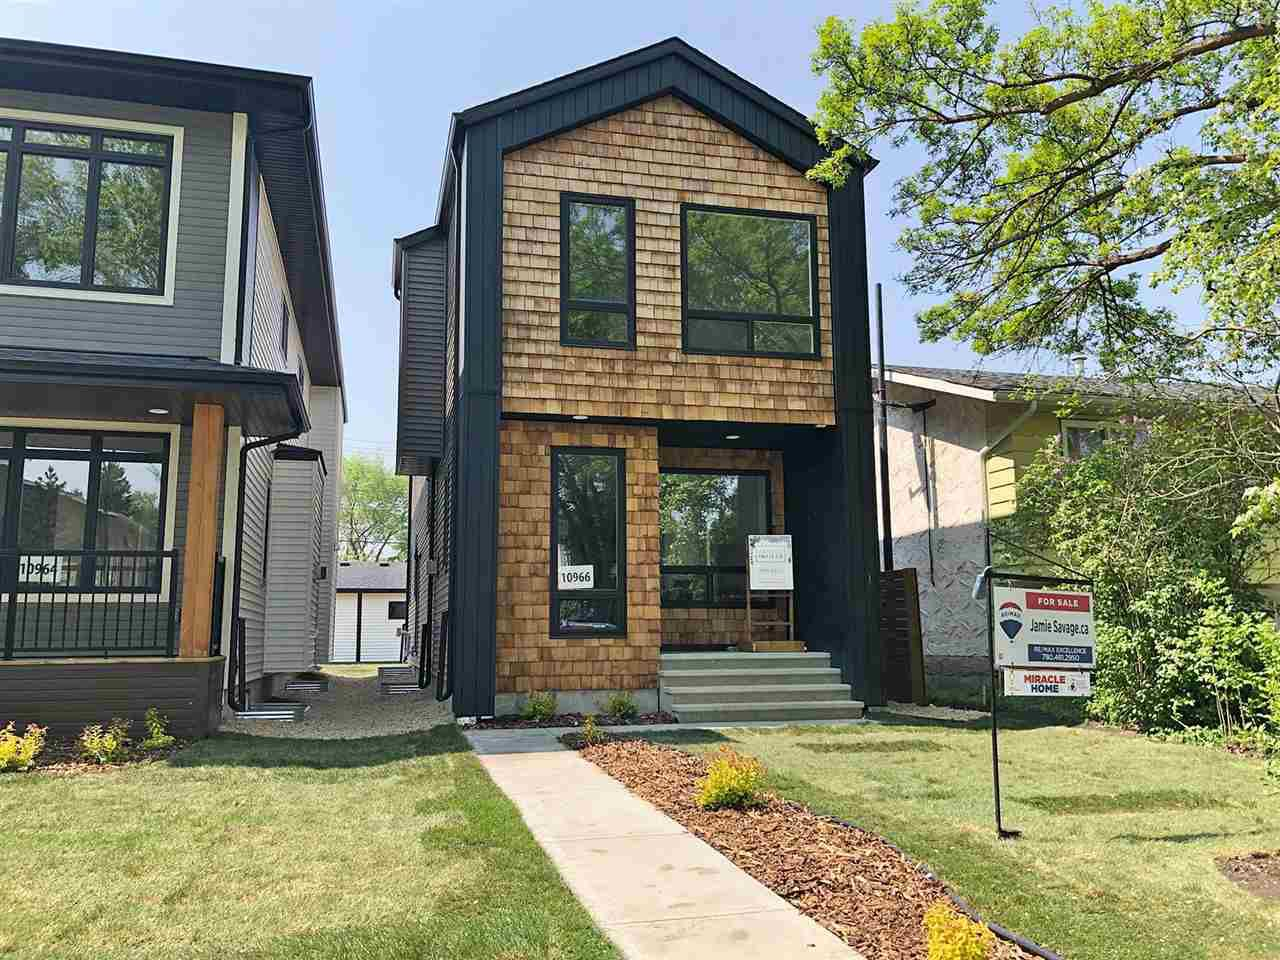 Main Photo: 10966 129 ST NW in Edmonton: Zone 07 House for sale : MLS®# E4149810